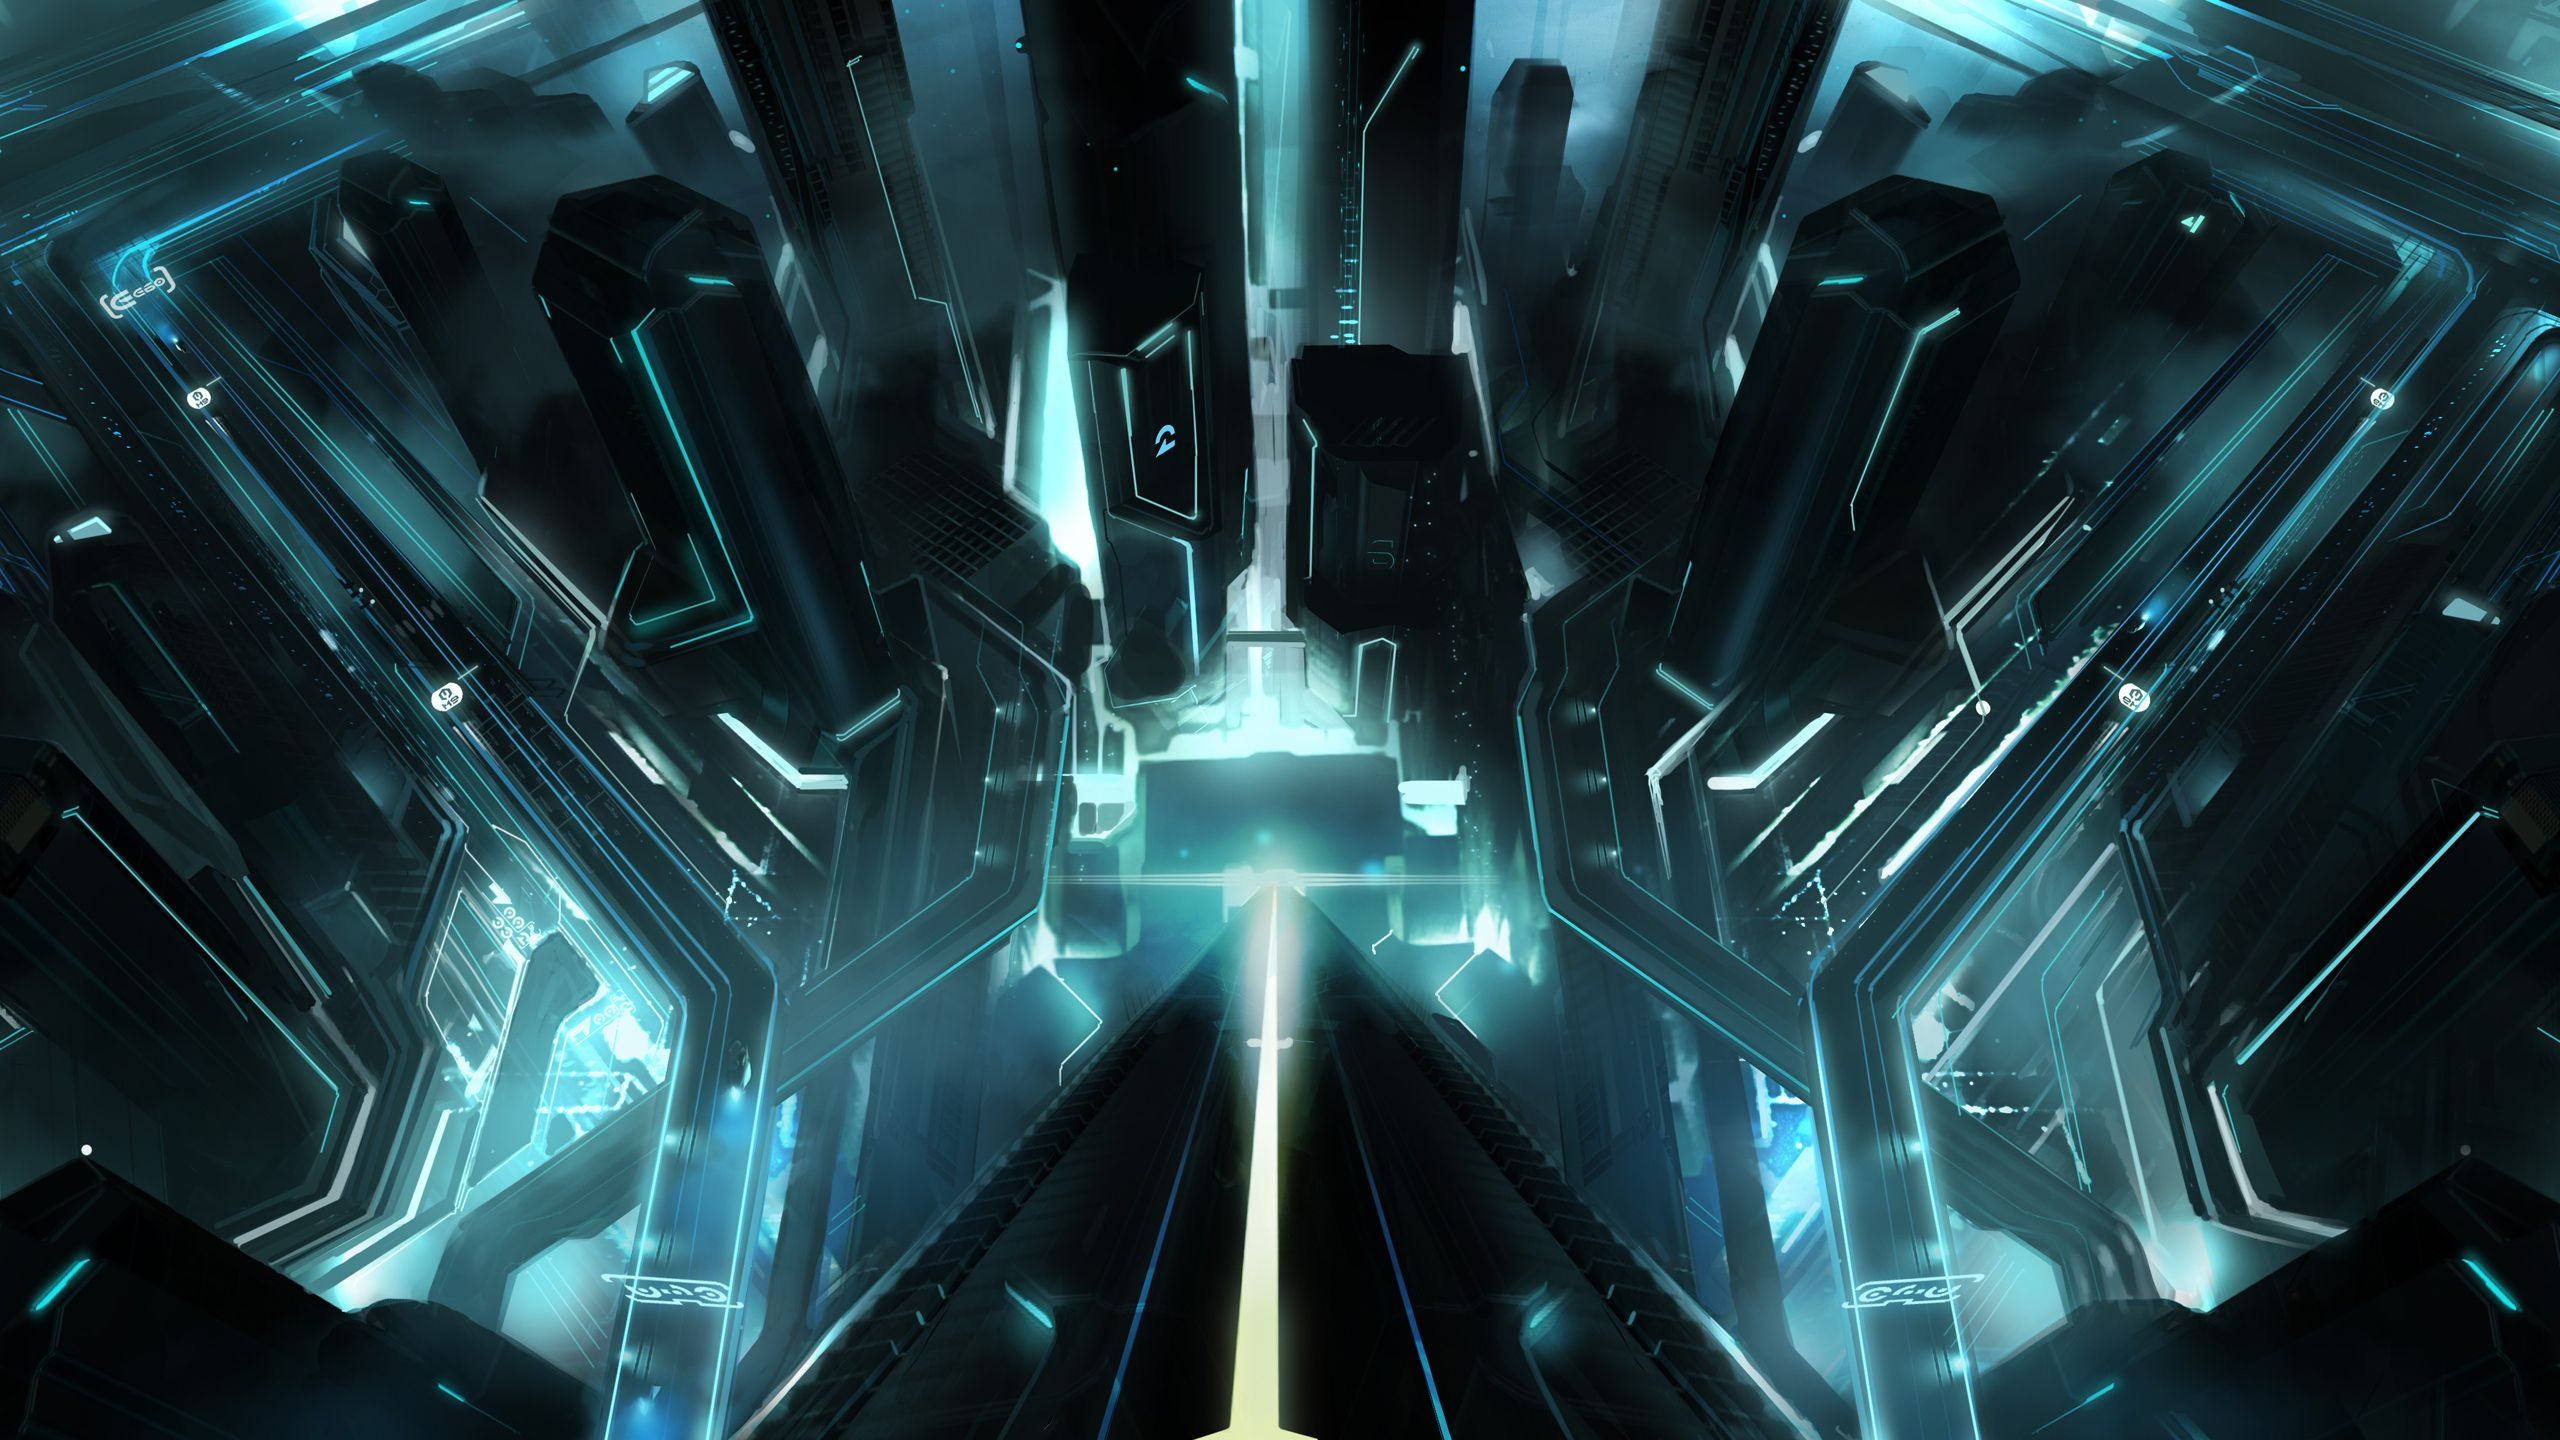 Tron City Wallpapers Top Free Tron City Backgrounds